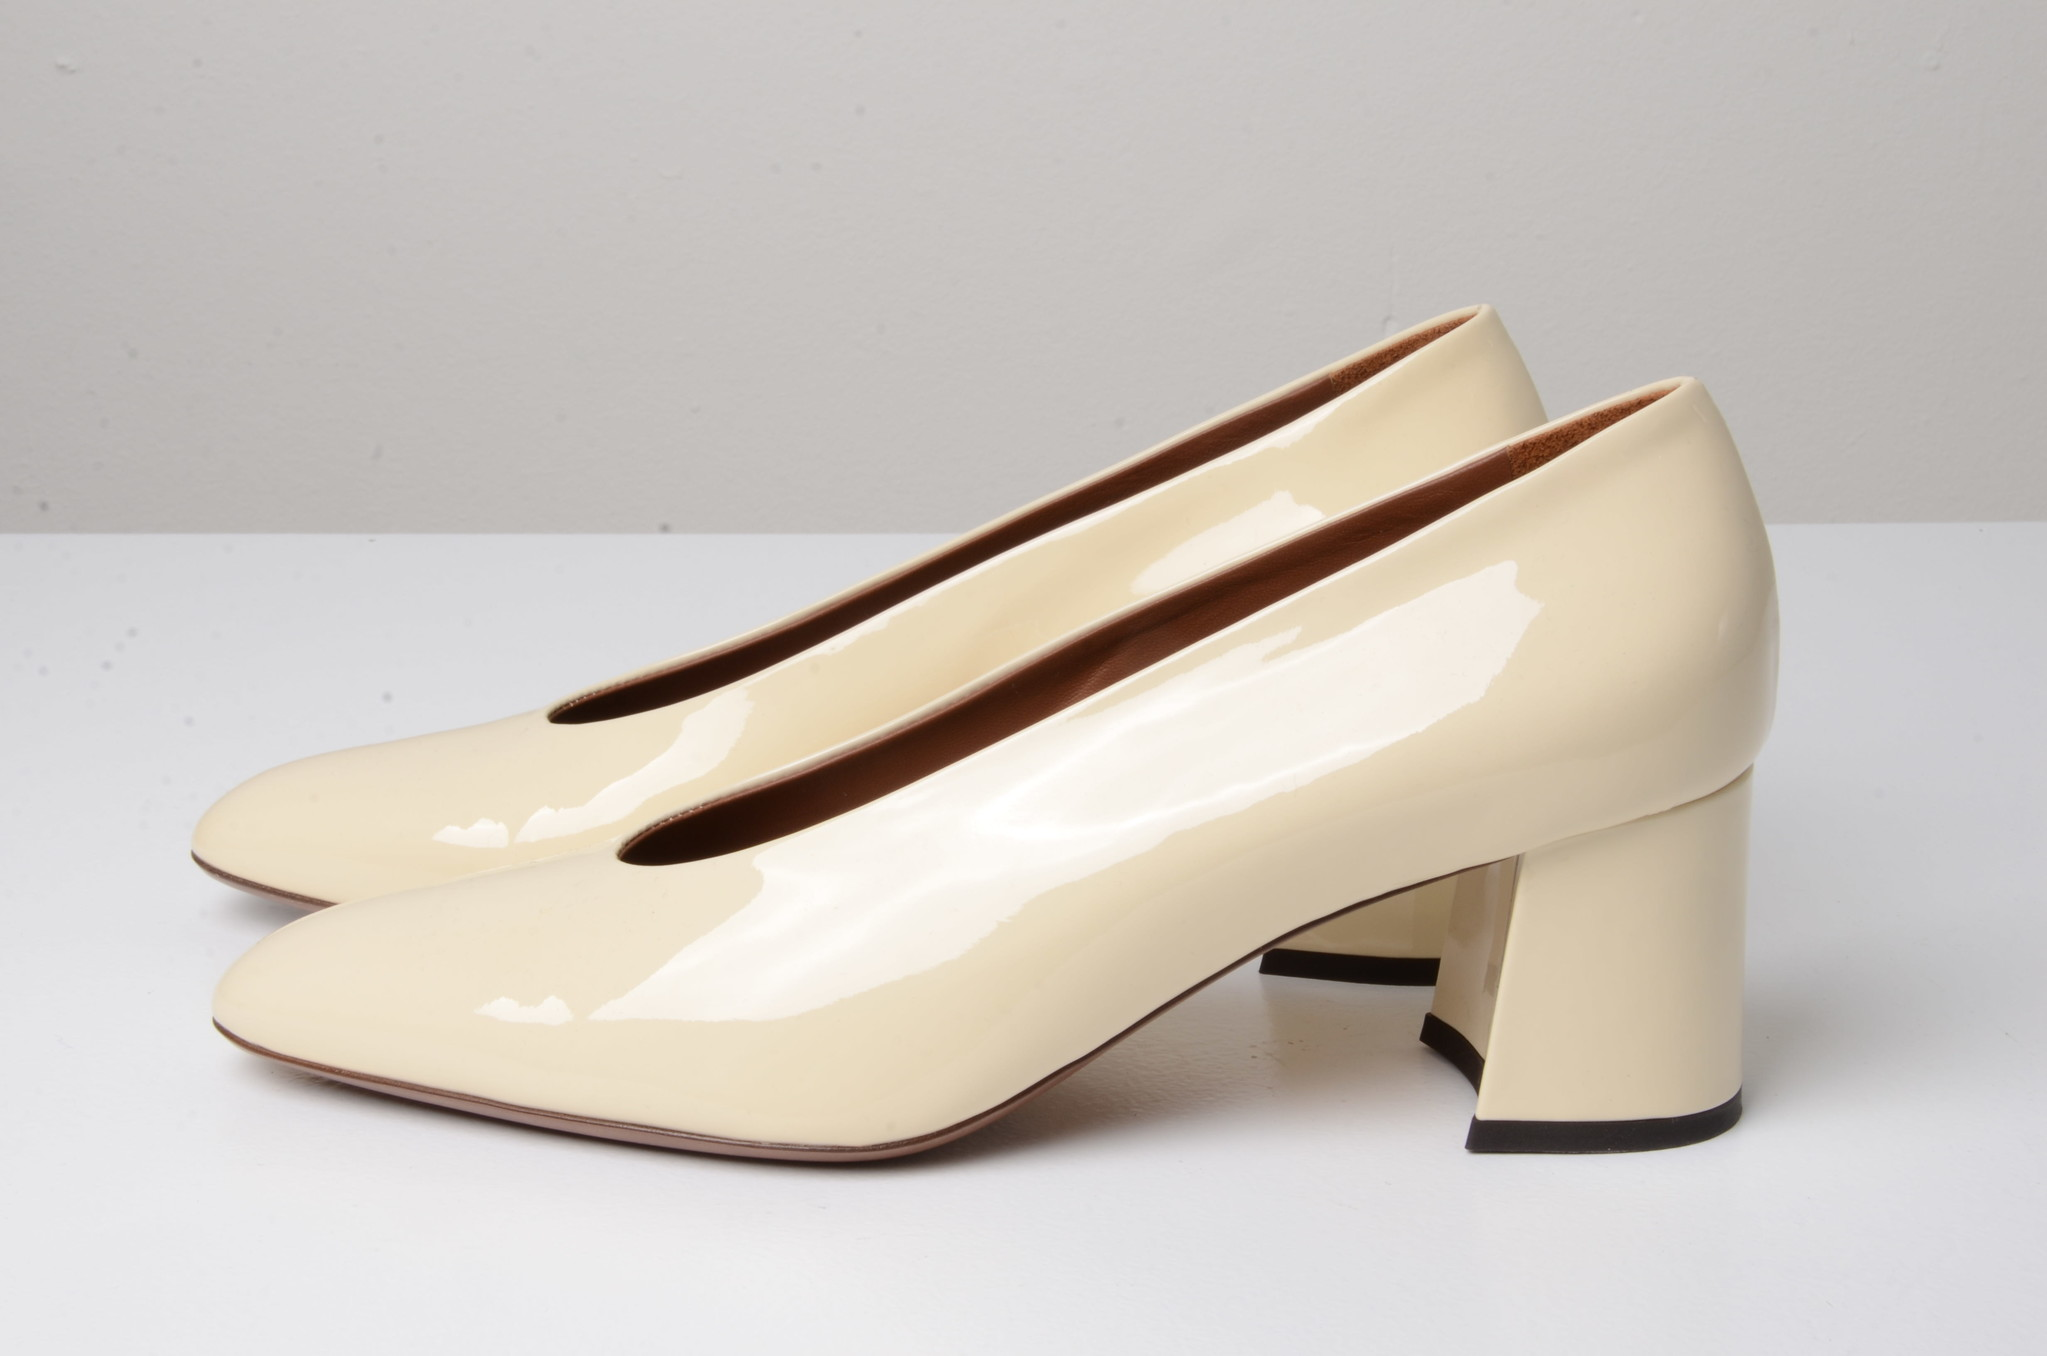 PATENT LEATHER SHOES CREAM-1